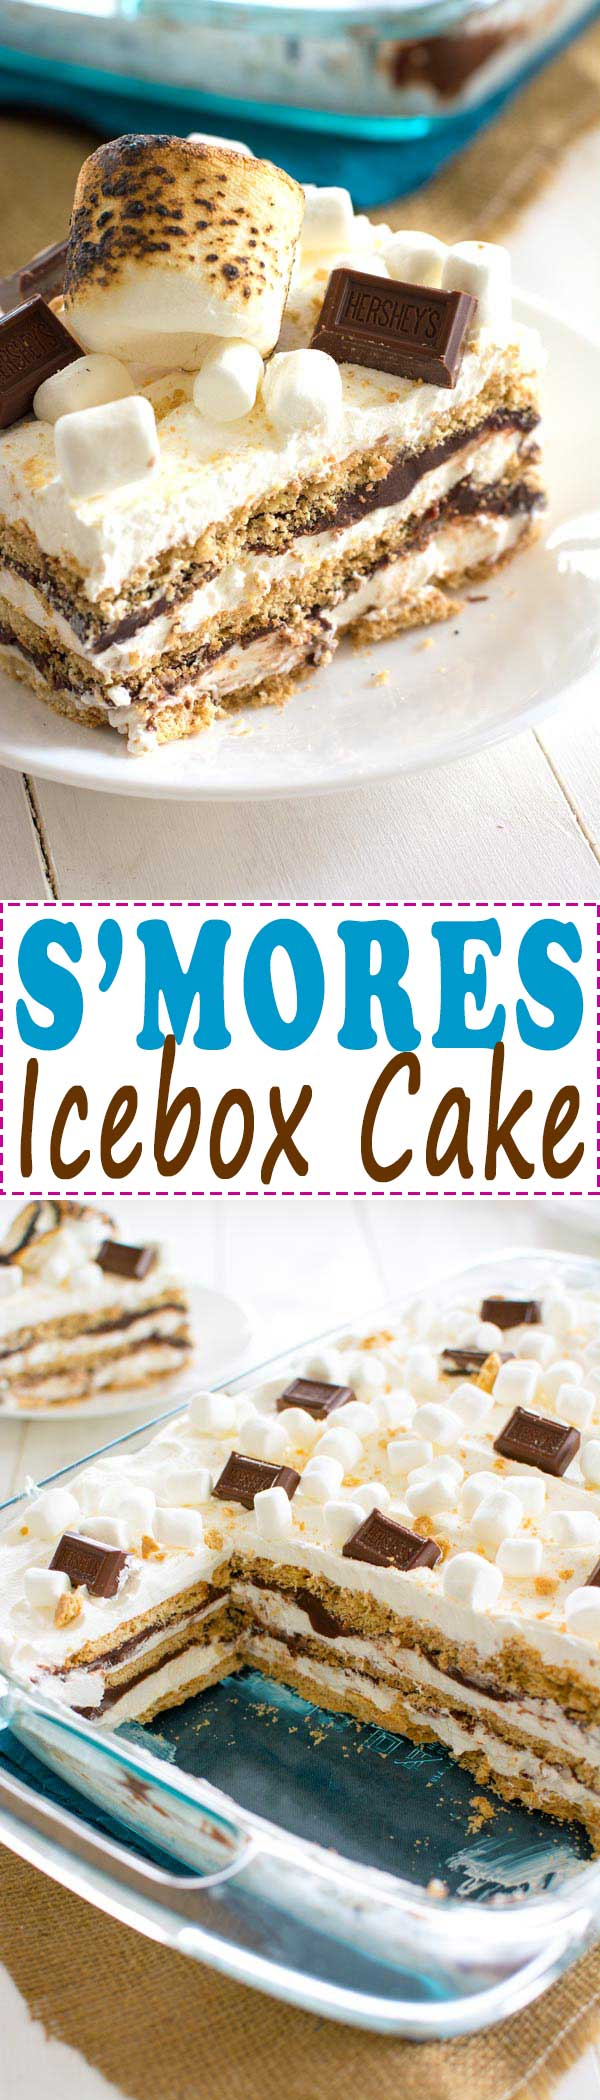 No-bake S'mores Icebox Cake with layers of graham crackers, marshmallow cream and chocolate - this dessert feeds a crowd!